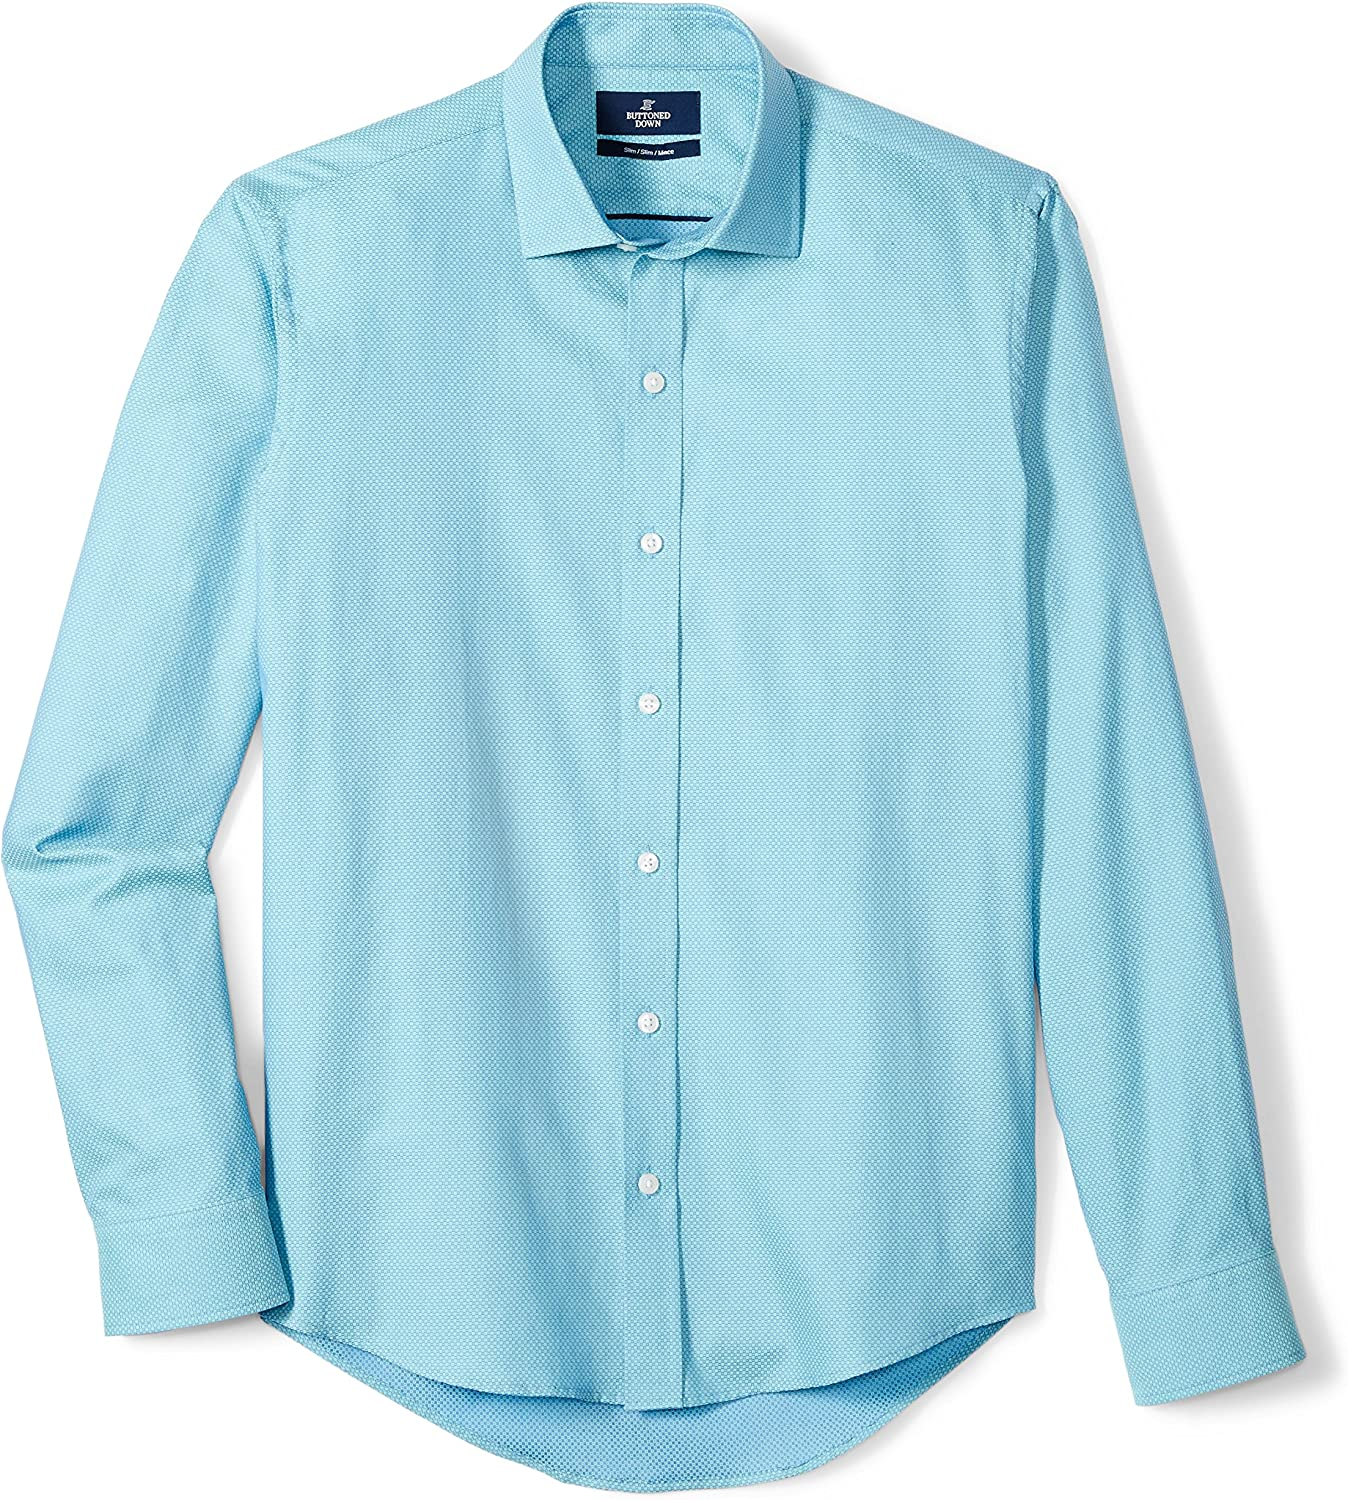 BUTTONED DOWN Mens Classic Fit Button-Collar Supima Cotton Dress Casual Shirt Brand